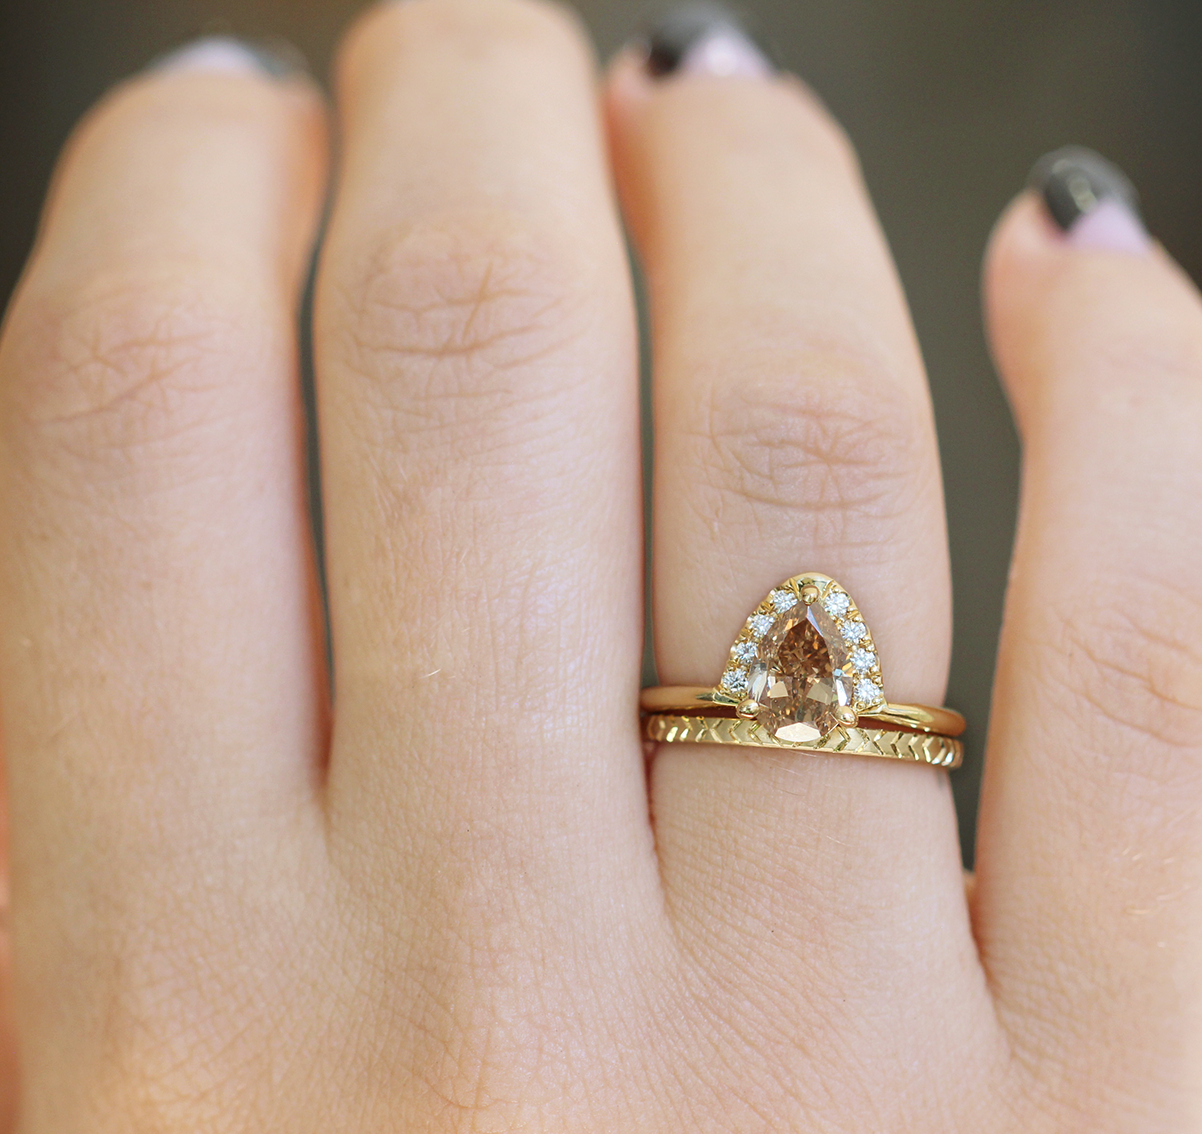 engagement baguette rings ring geometric solid diamond gold media